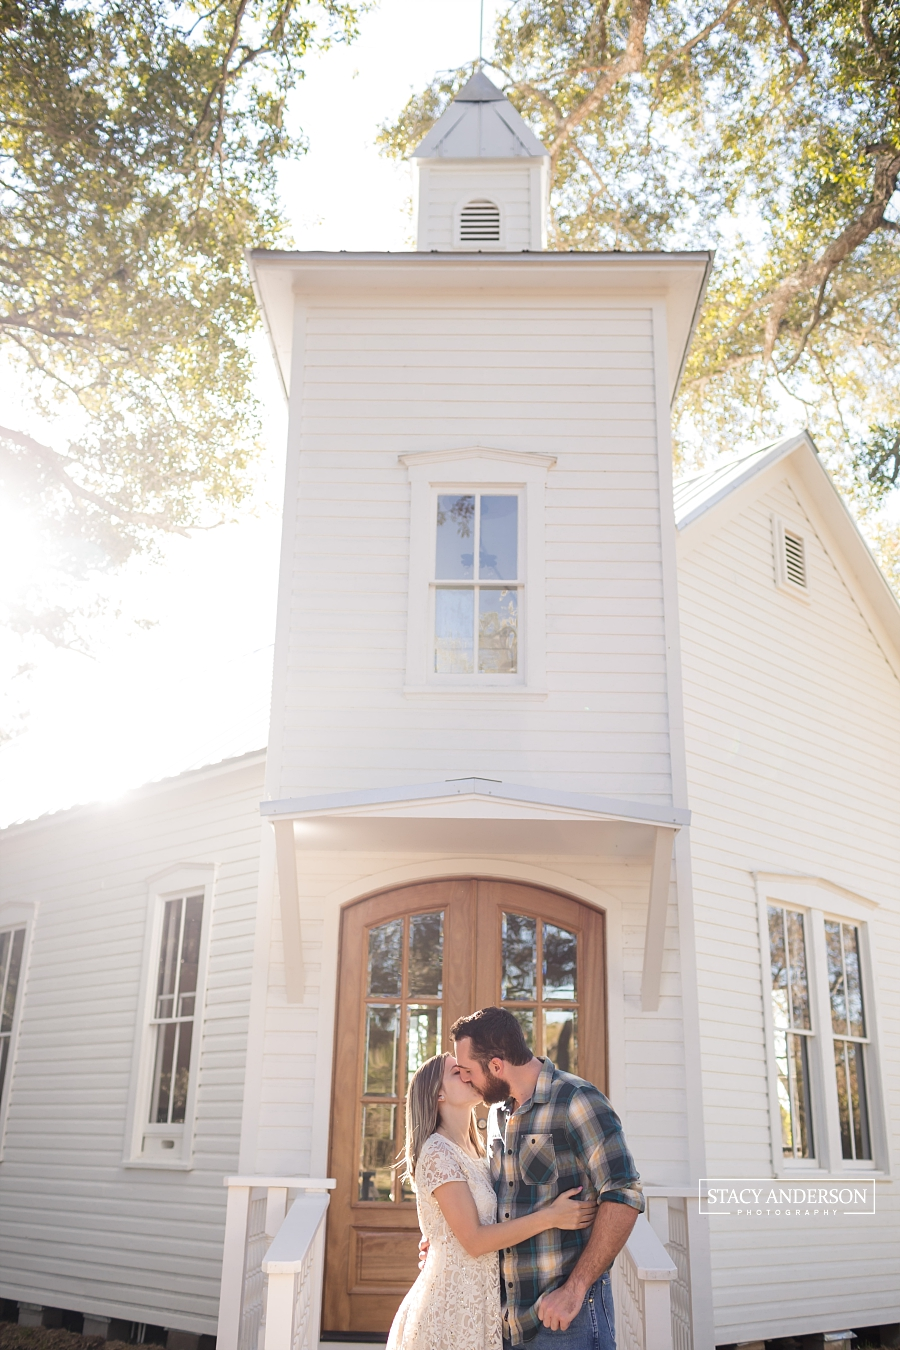 stacy-anderson-photography-alvin-wedding-photographer_0004